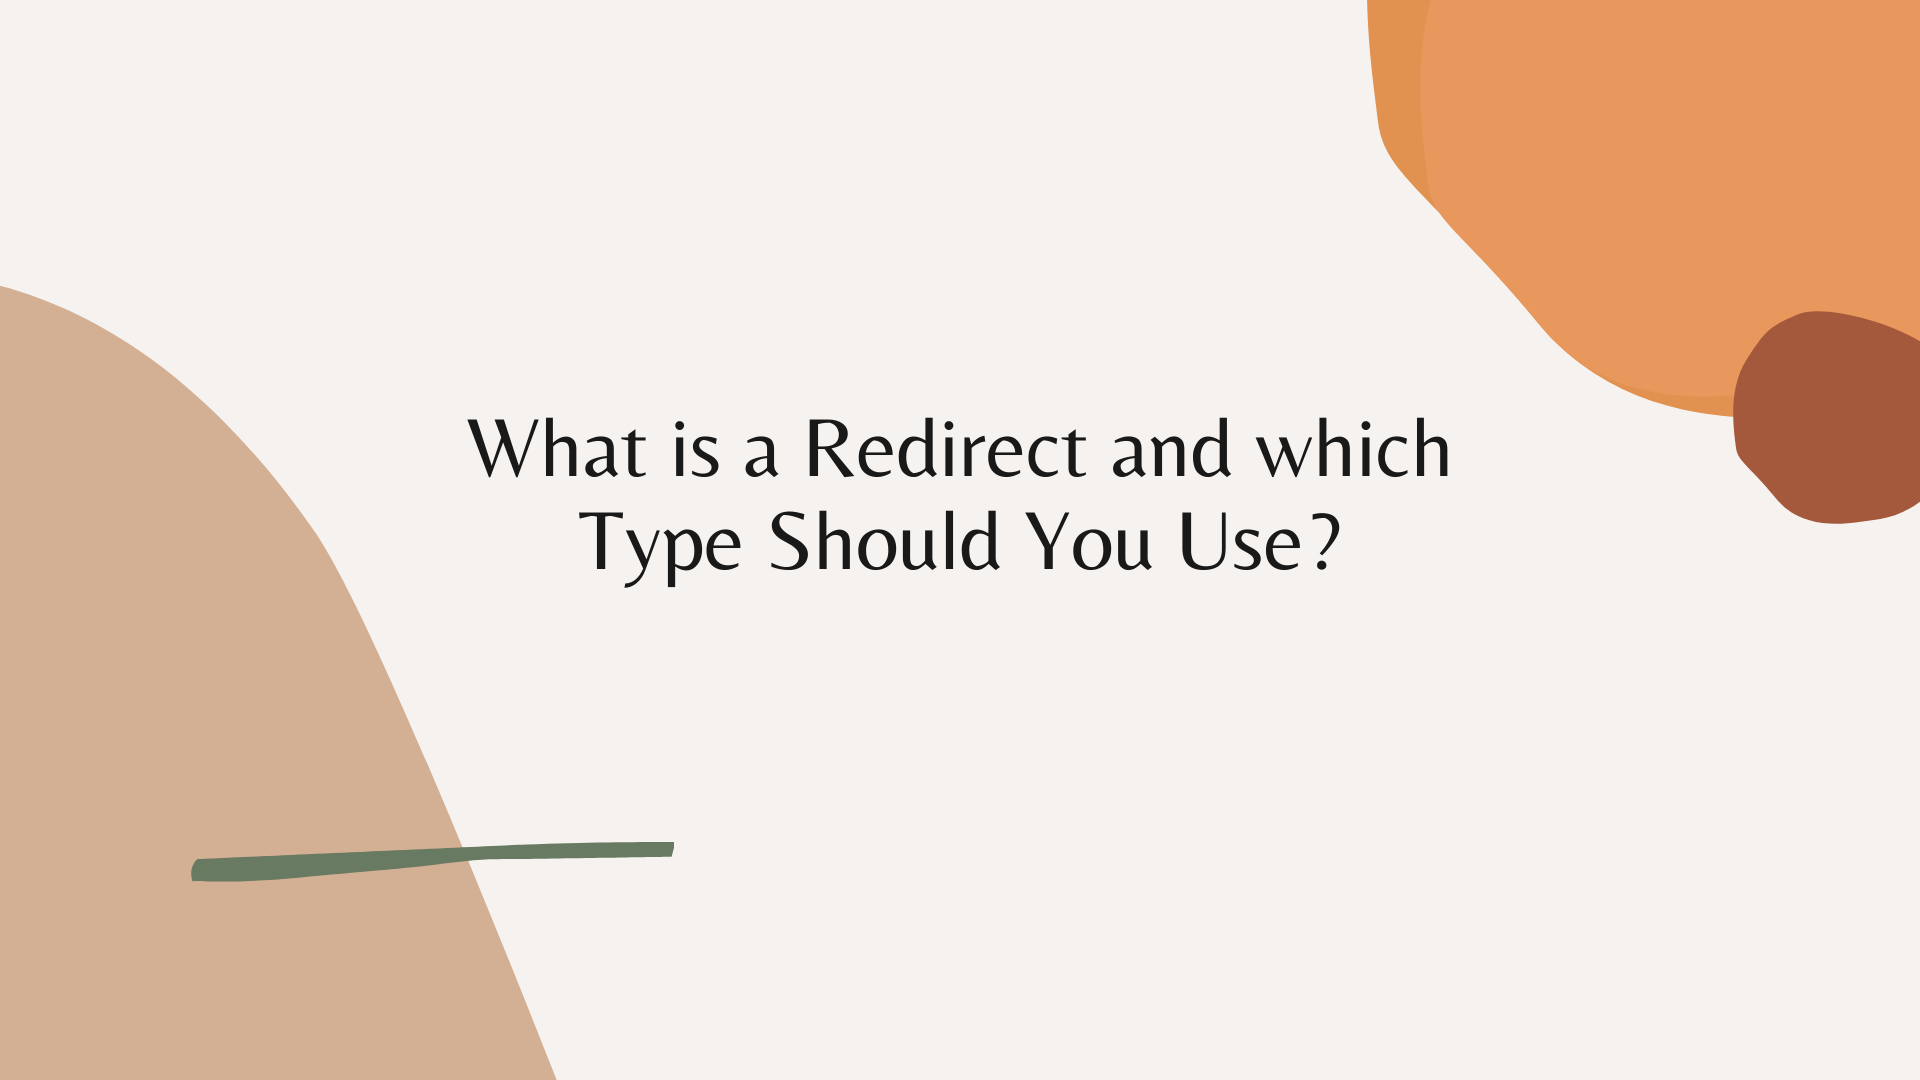 What is a Redirect